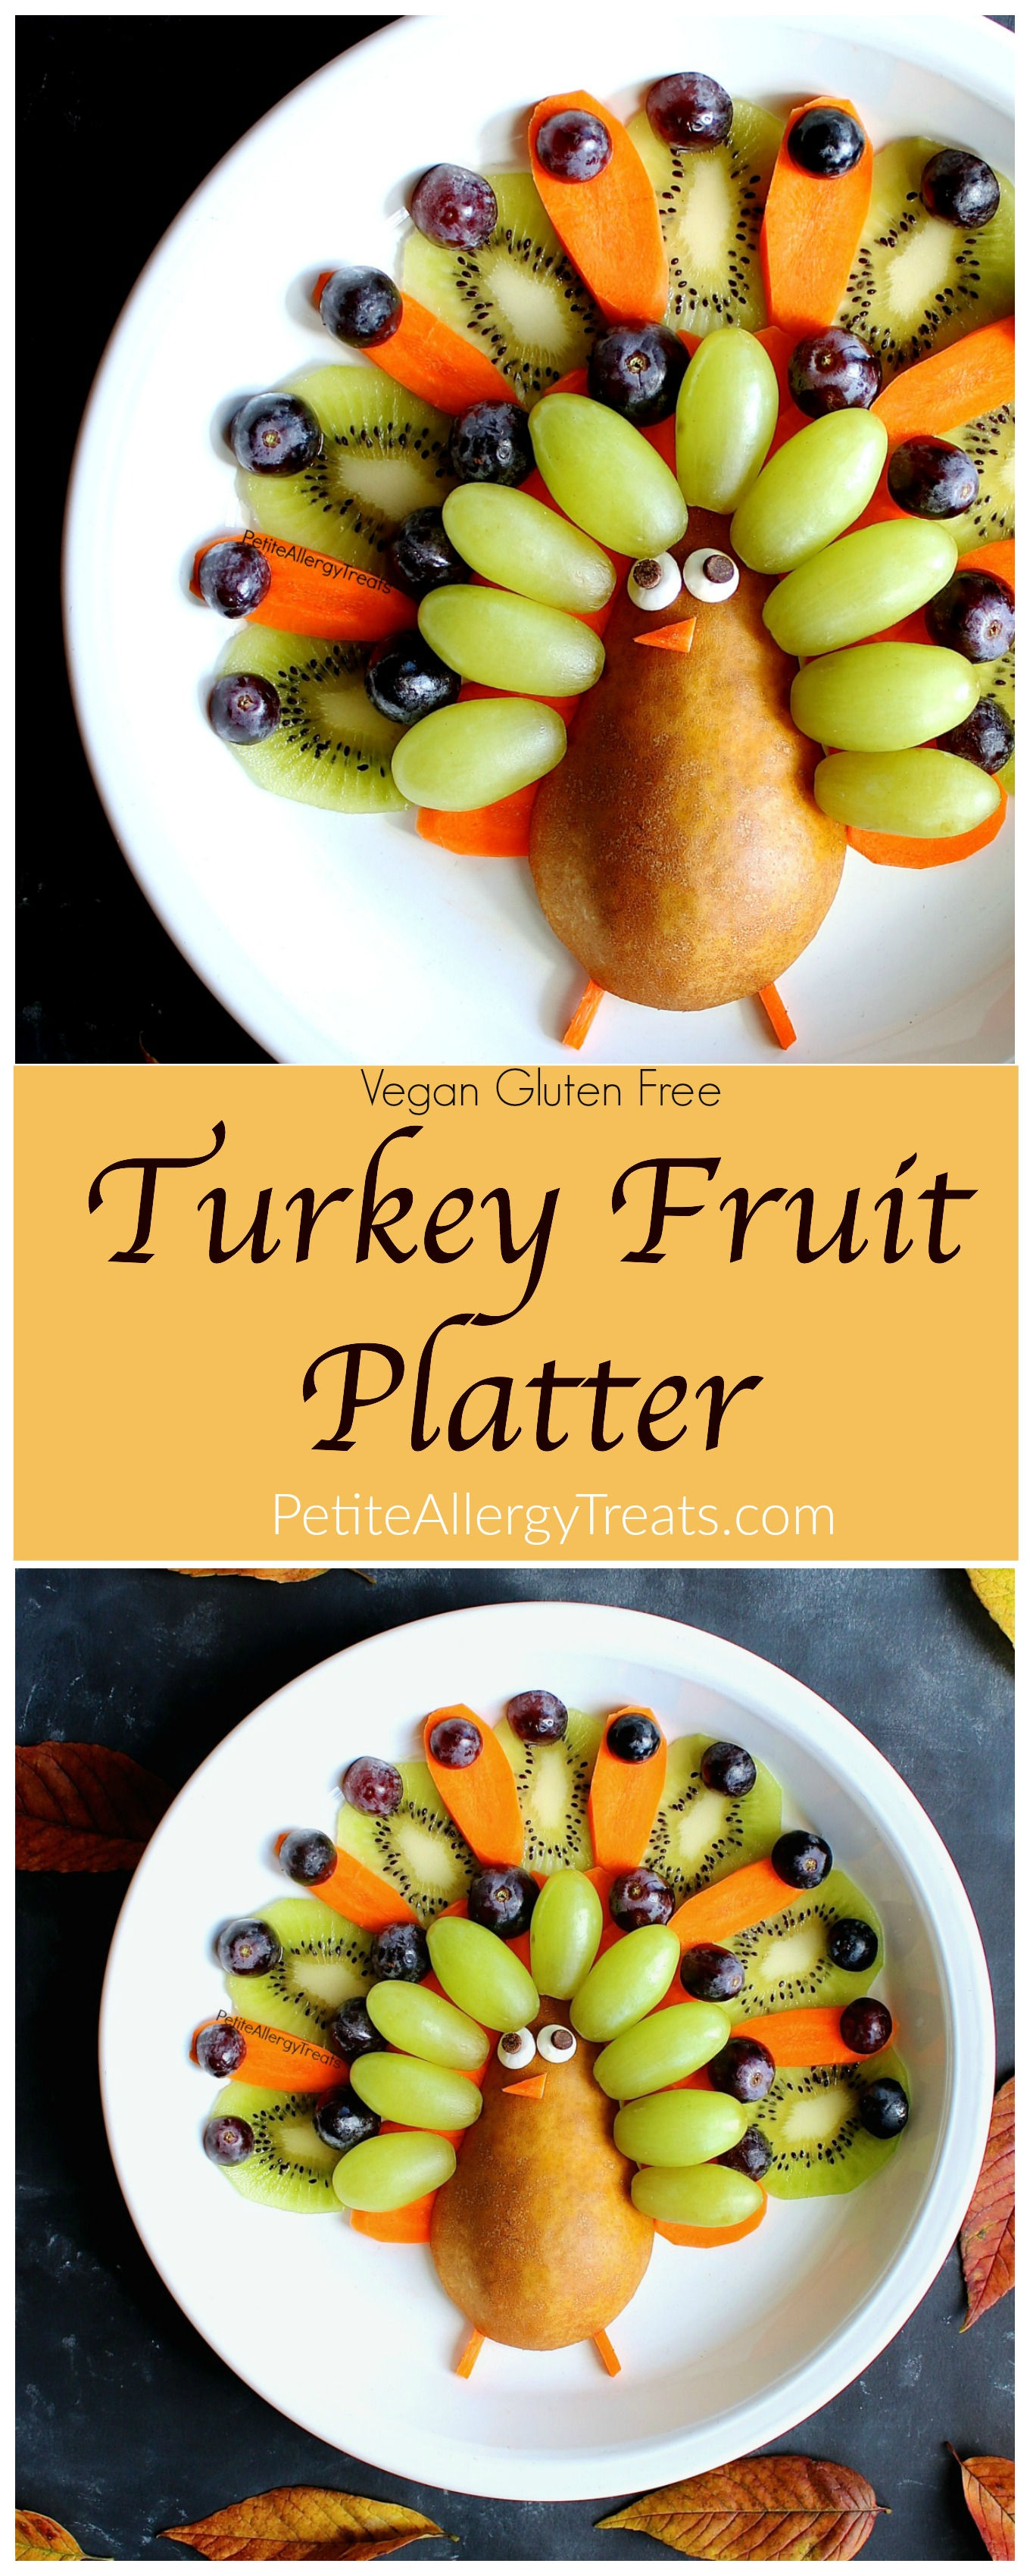 Vegan Turkey Fruit Platter (gluten free ) Recipe- Adorable easy party turkey fruit platter! Simple center piece for Thanksgiving!